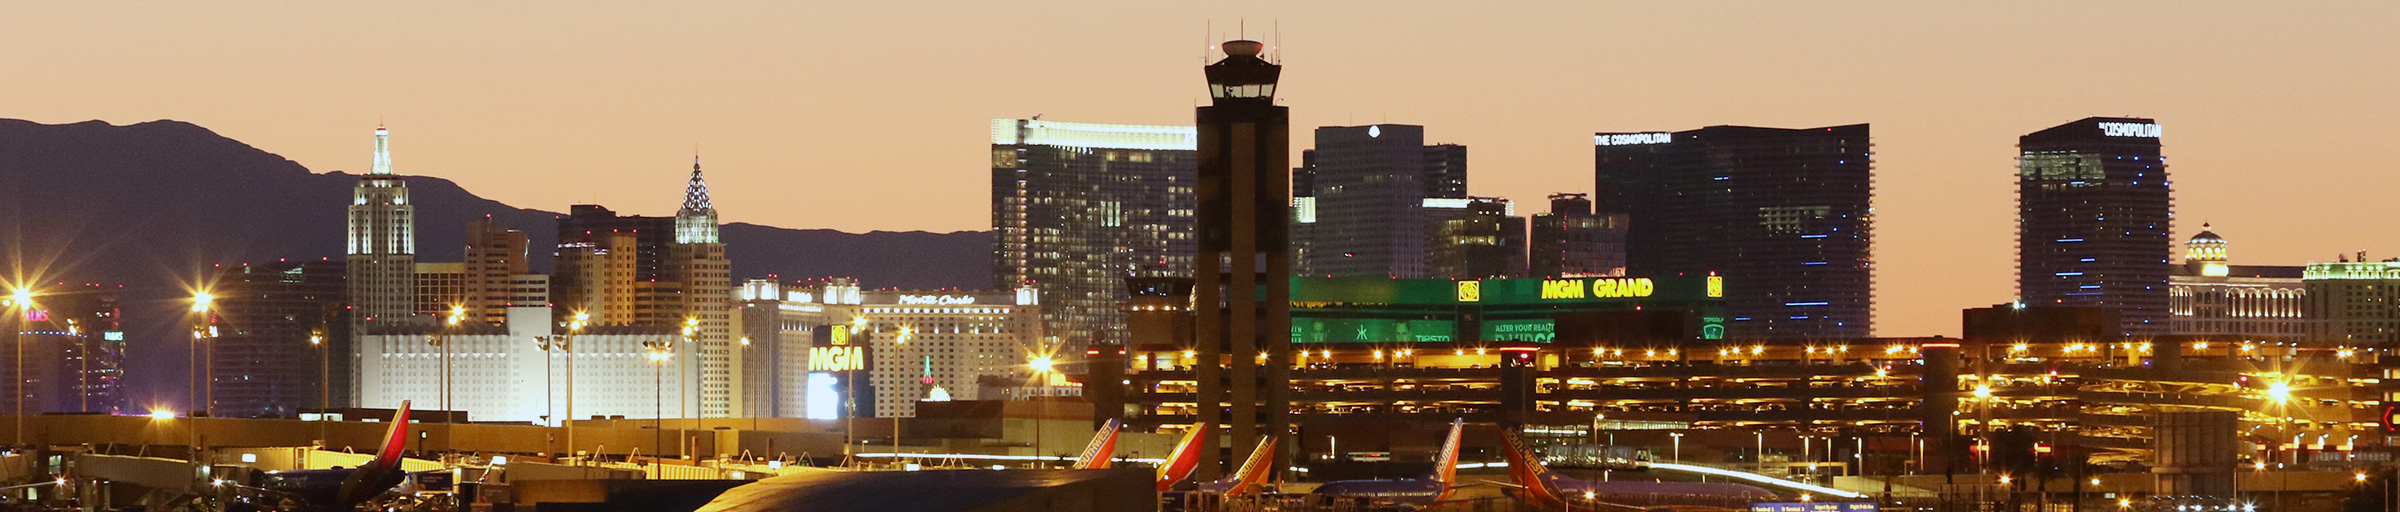 Pay Parking Citations Online at McCarran